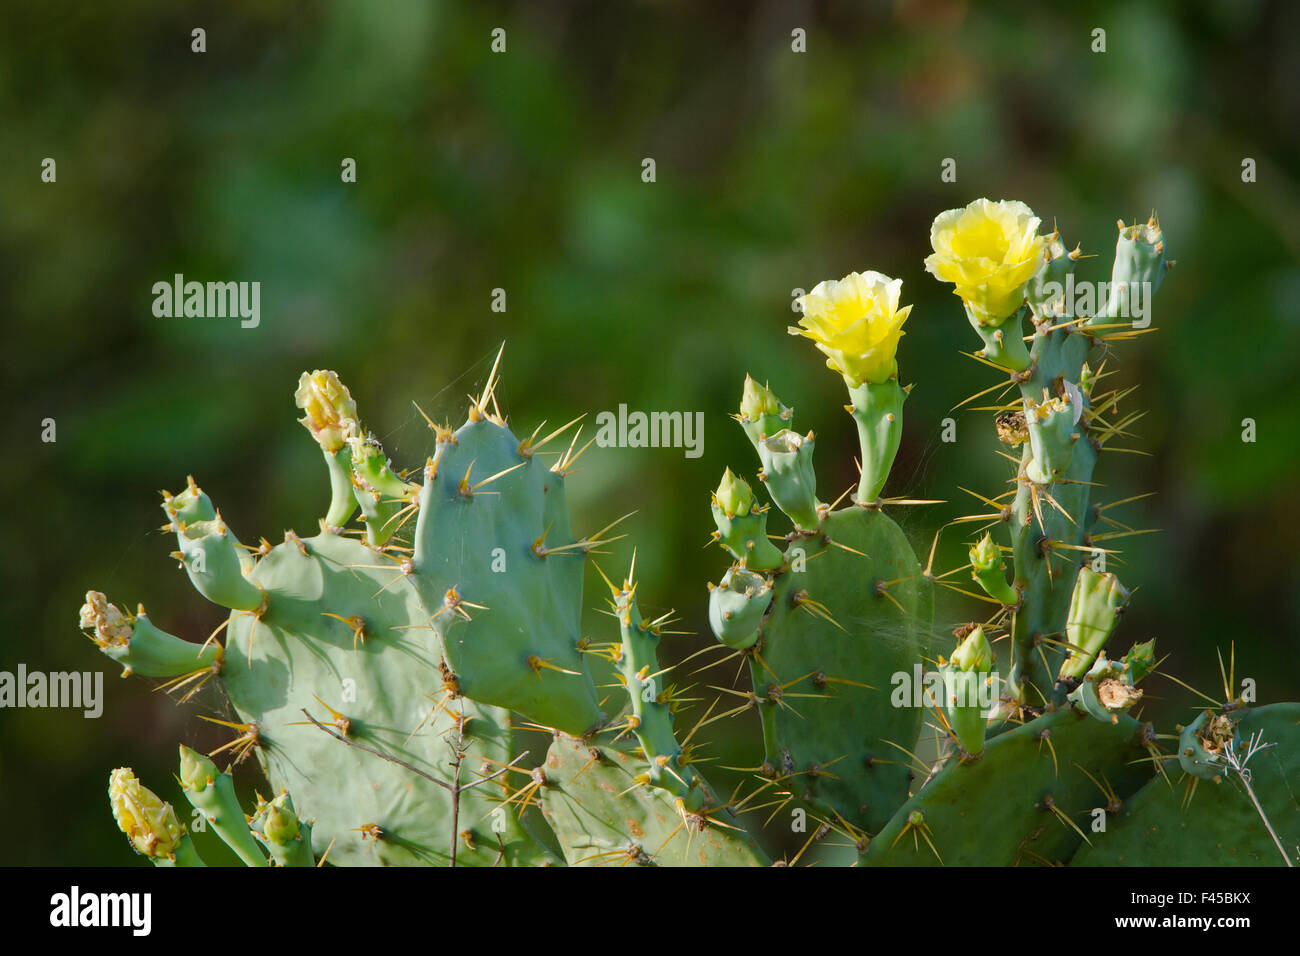 cactus fig stockfotos cactus fig bilder alamy. Black Bedroom Furniture Sets. Home Design Ideas